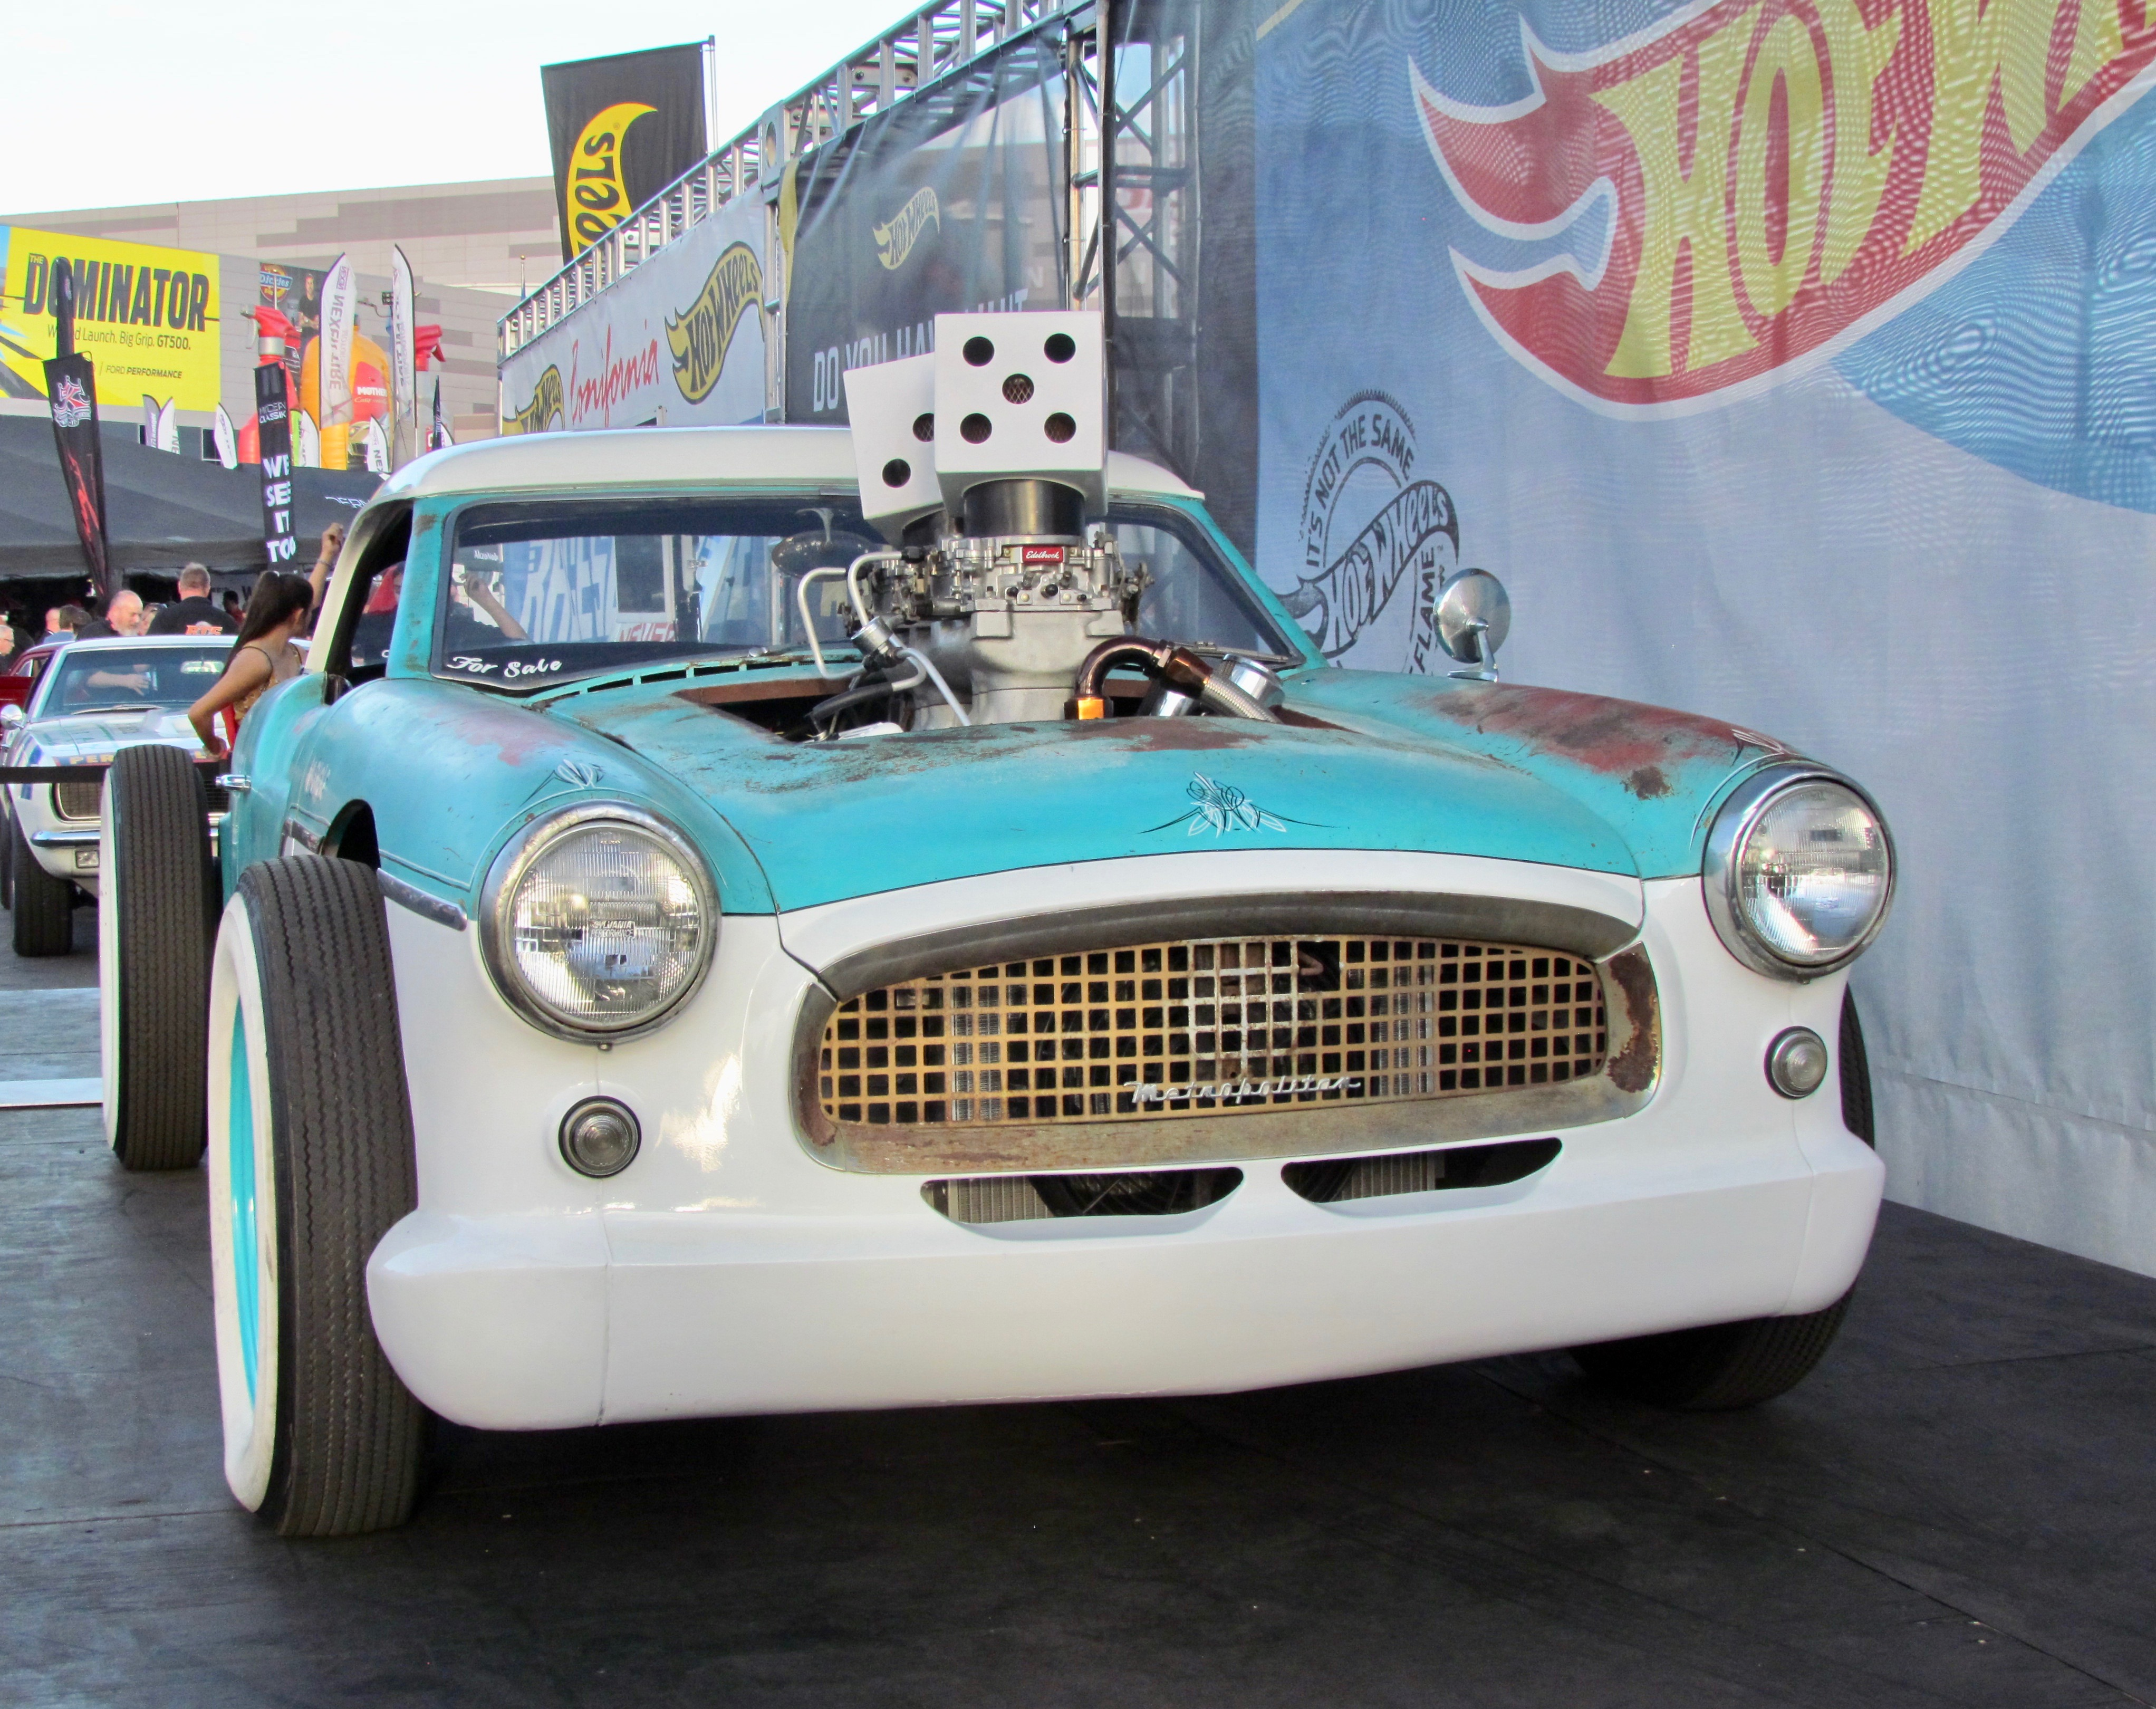 Hot Wheels, Imagine, your car becomes a Hot Wheels toy, ClassicCars.com Journal